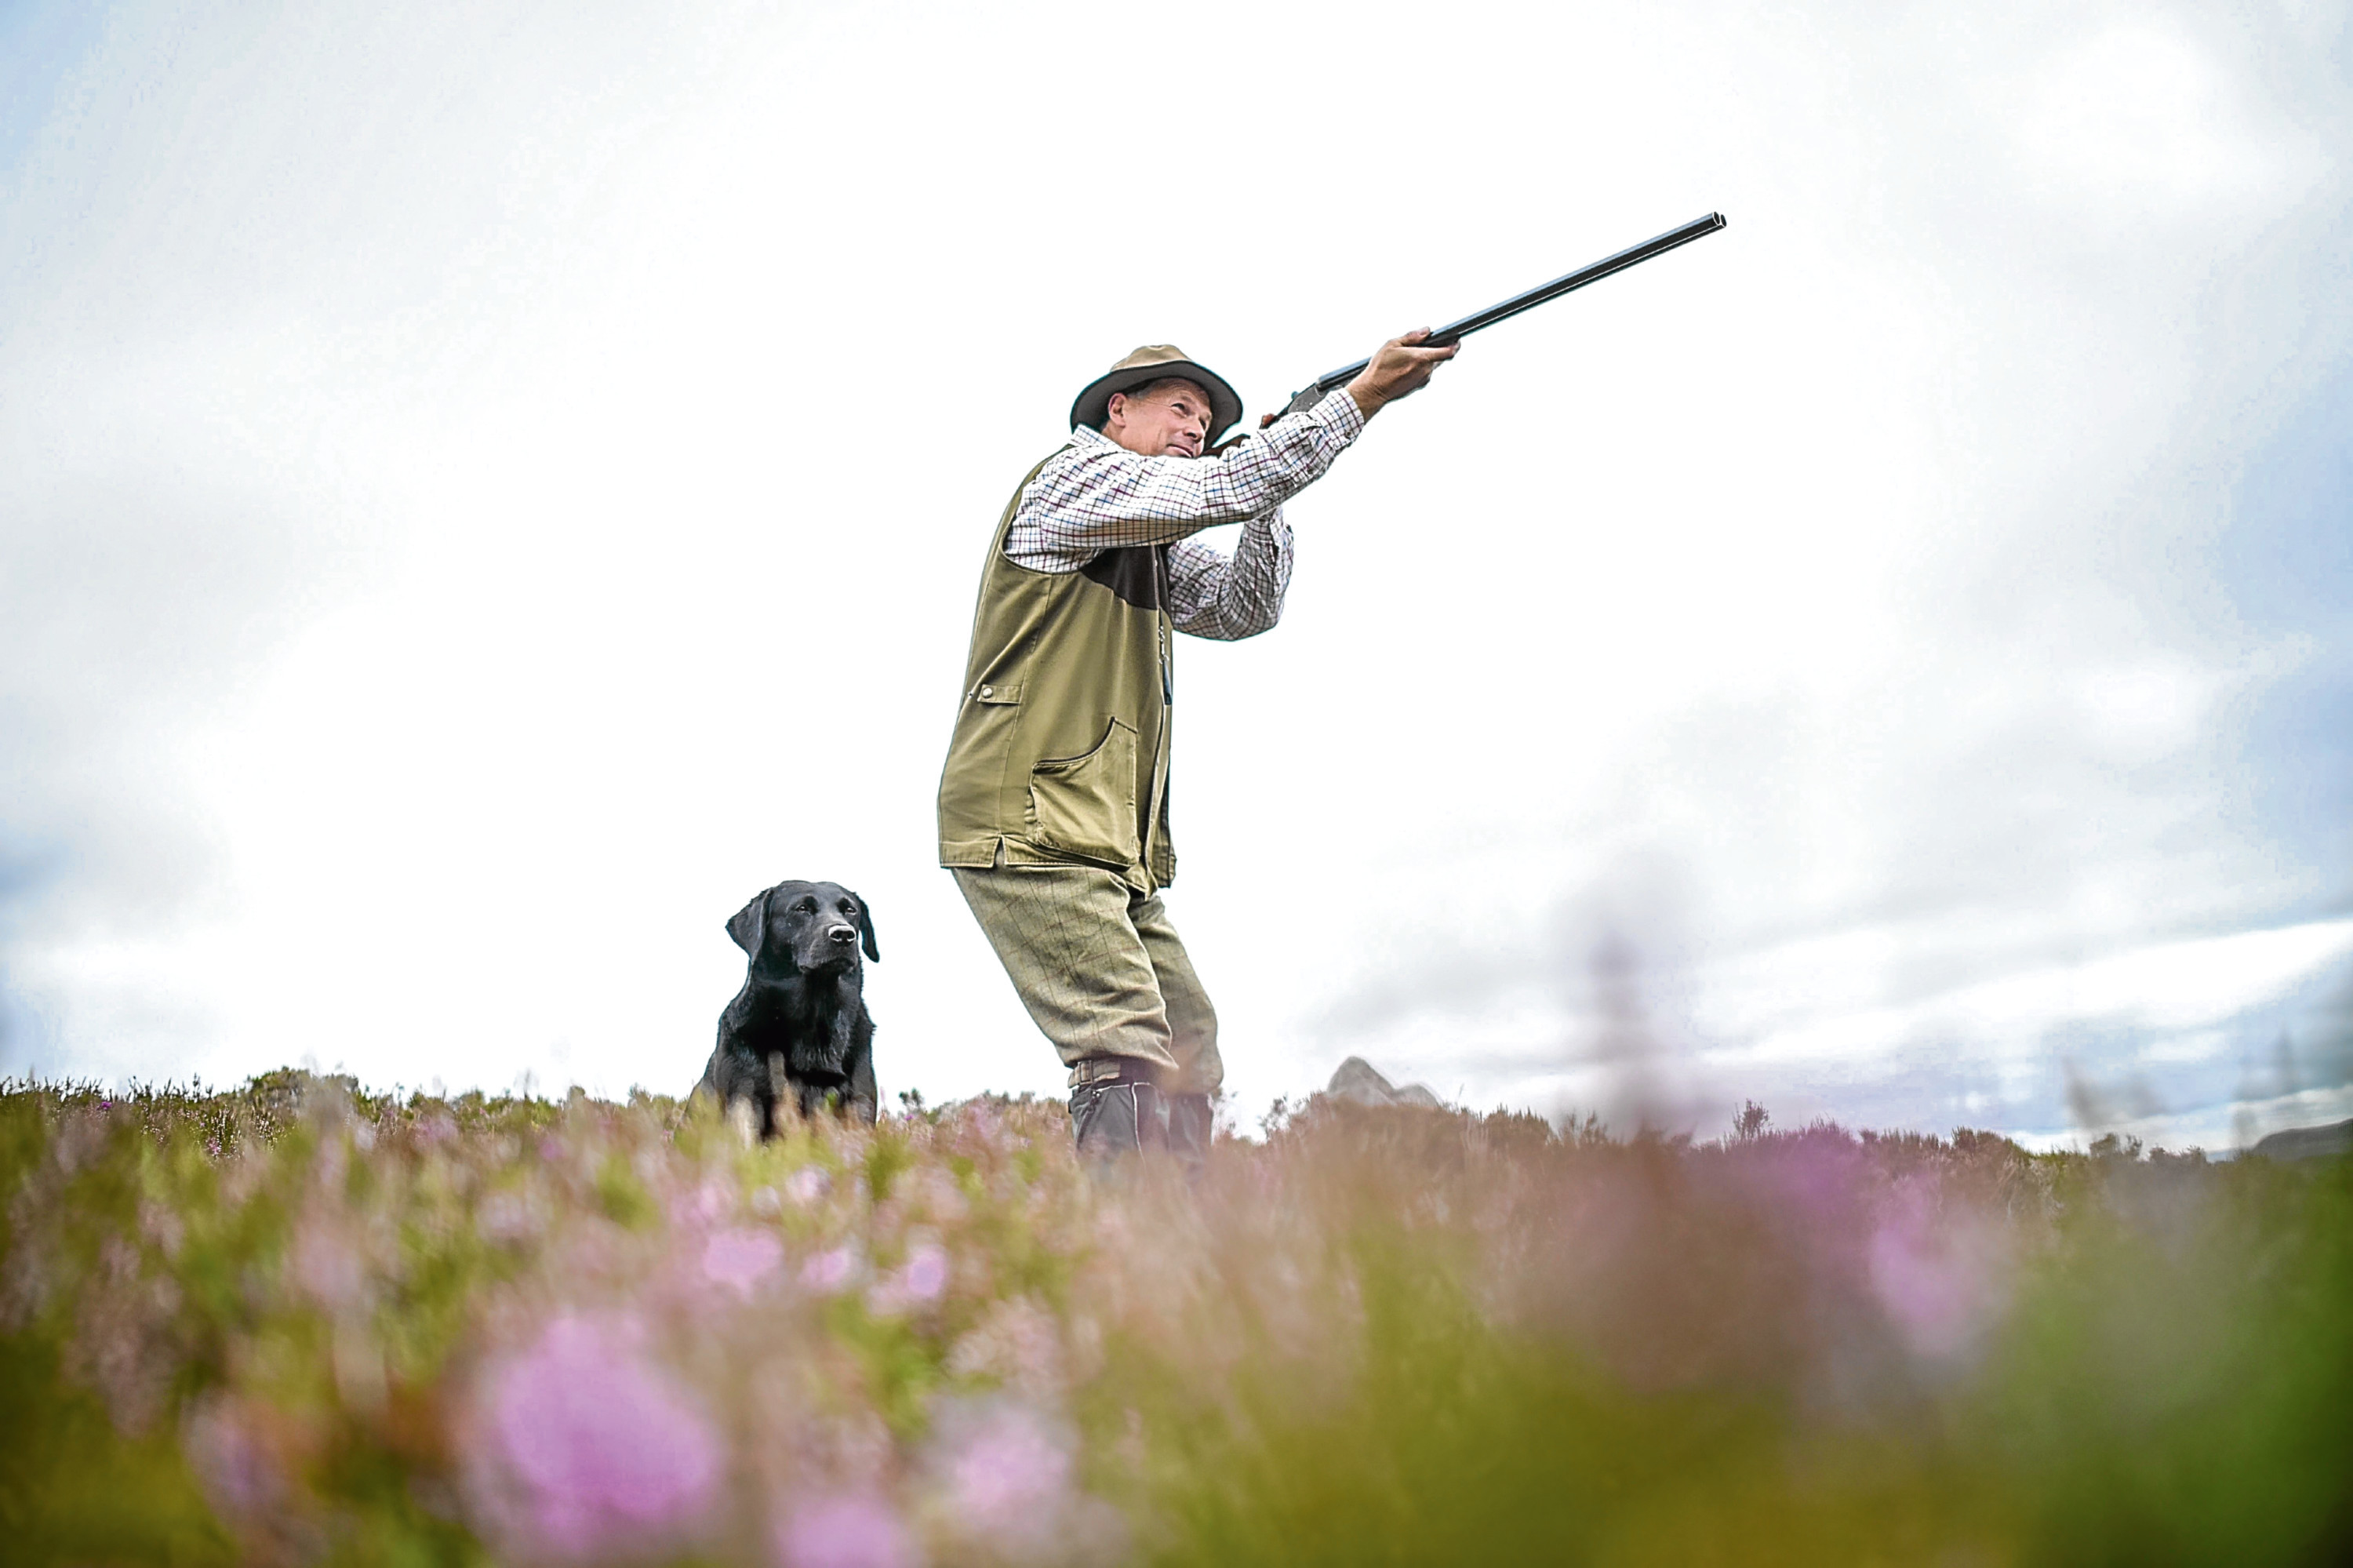 A Glorious 12th grouse shoot near Glenclova.